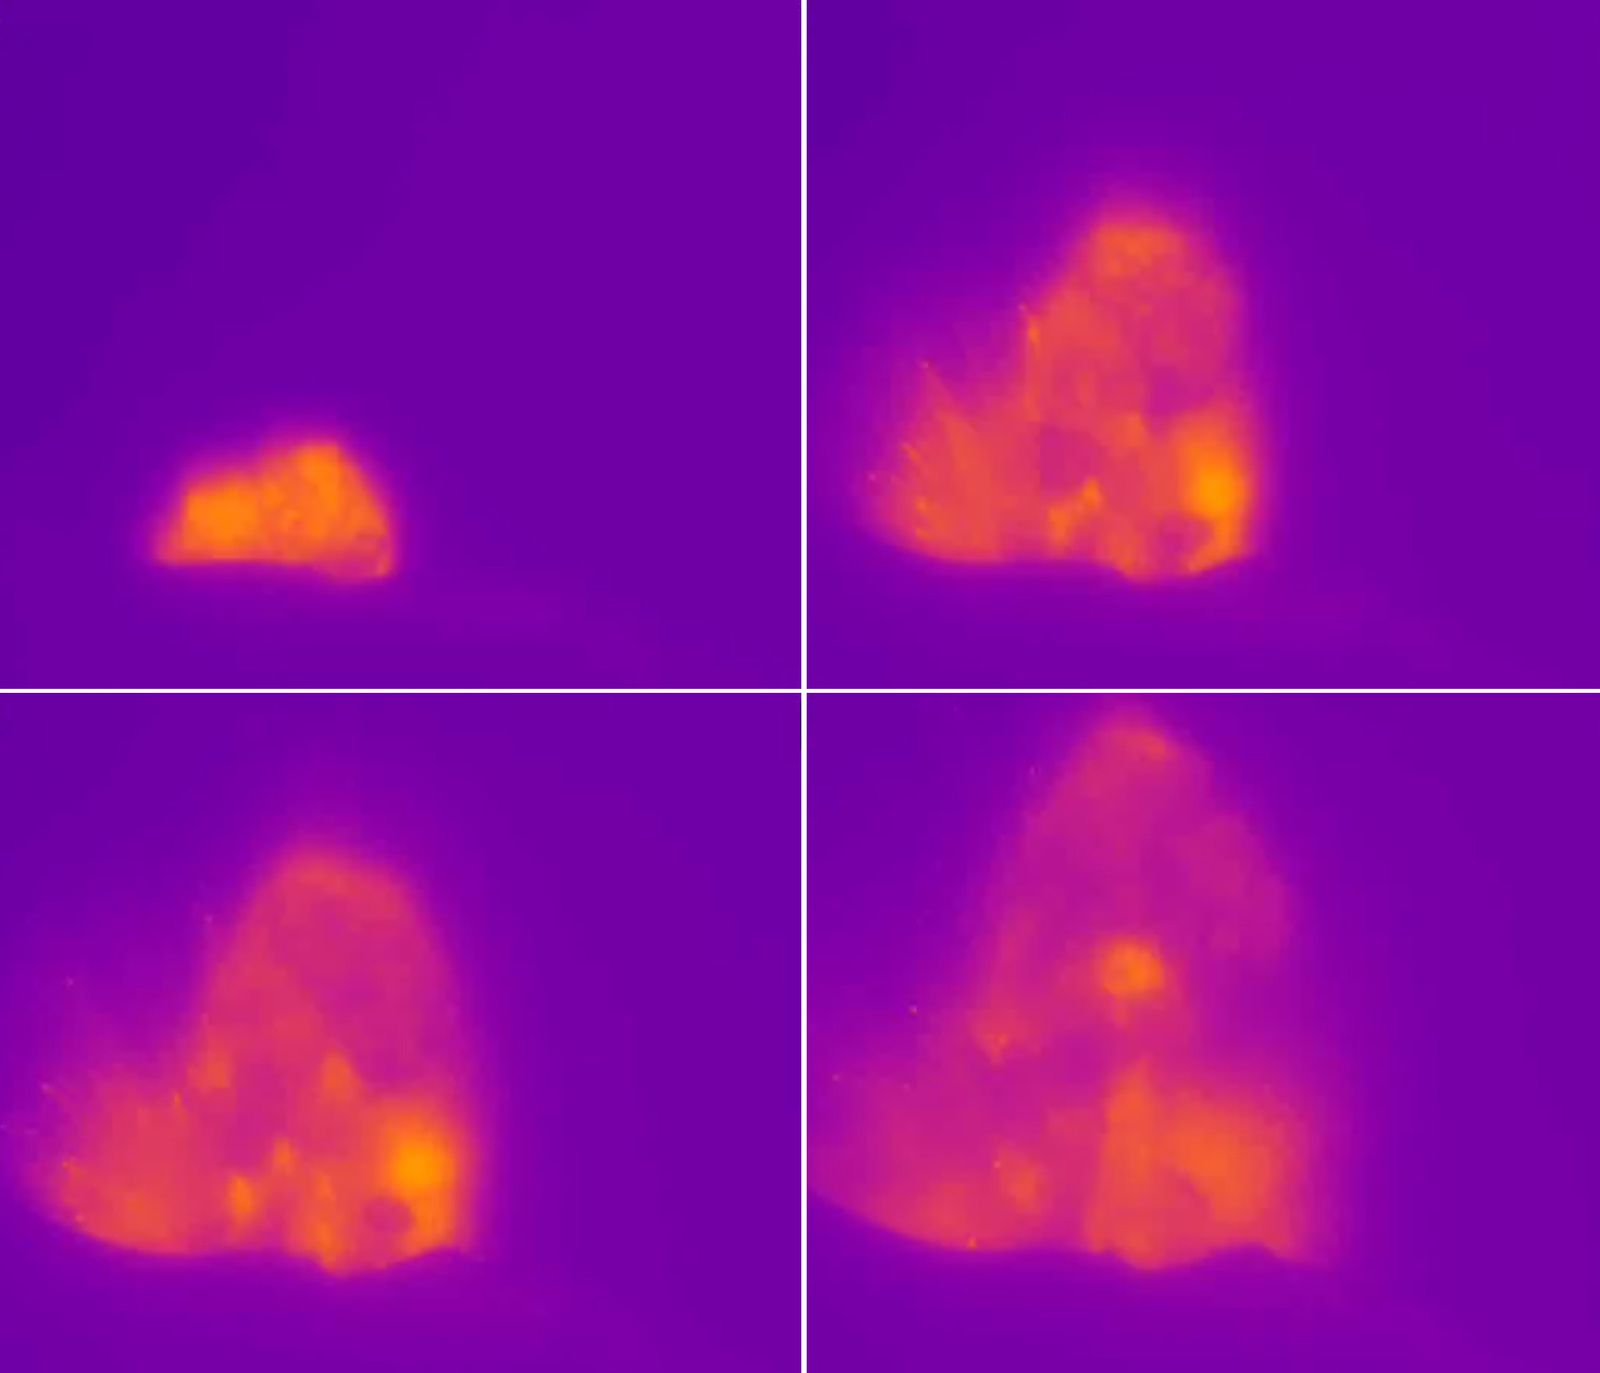 Stromboli - Explosive event of 25.06.2019, taken by the thermal camera of Roccette (ROC)